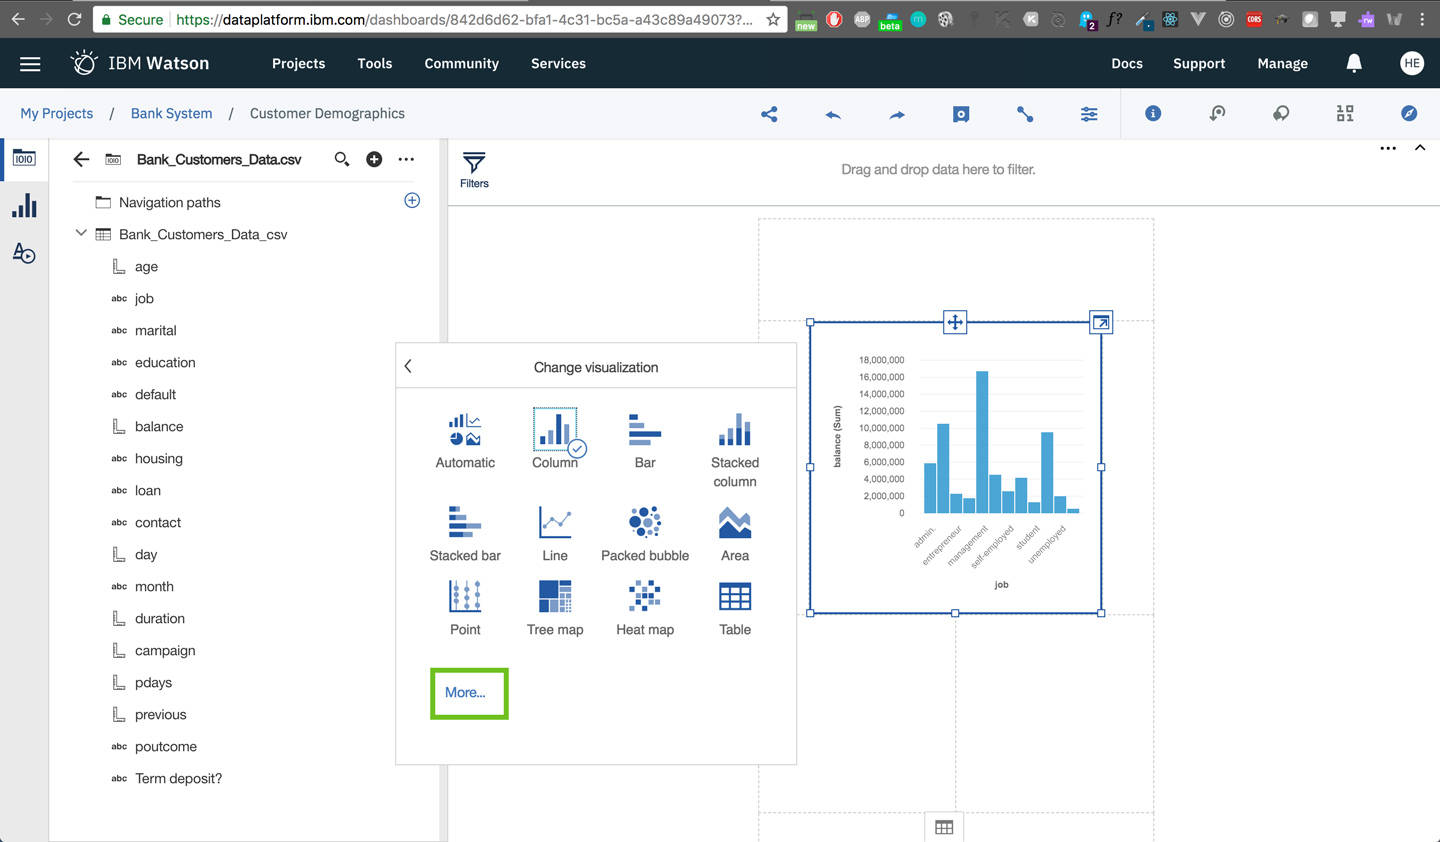 dashboard: Visualizations available